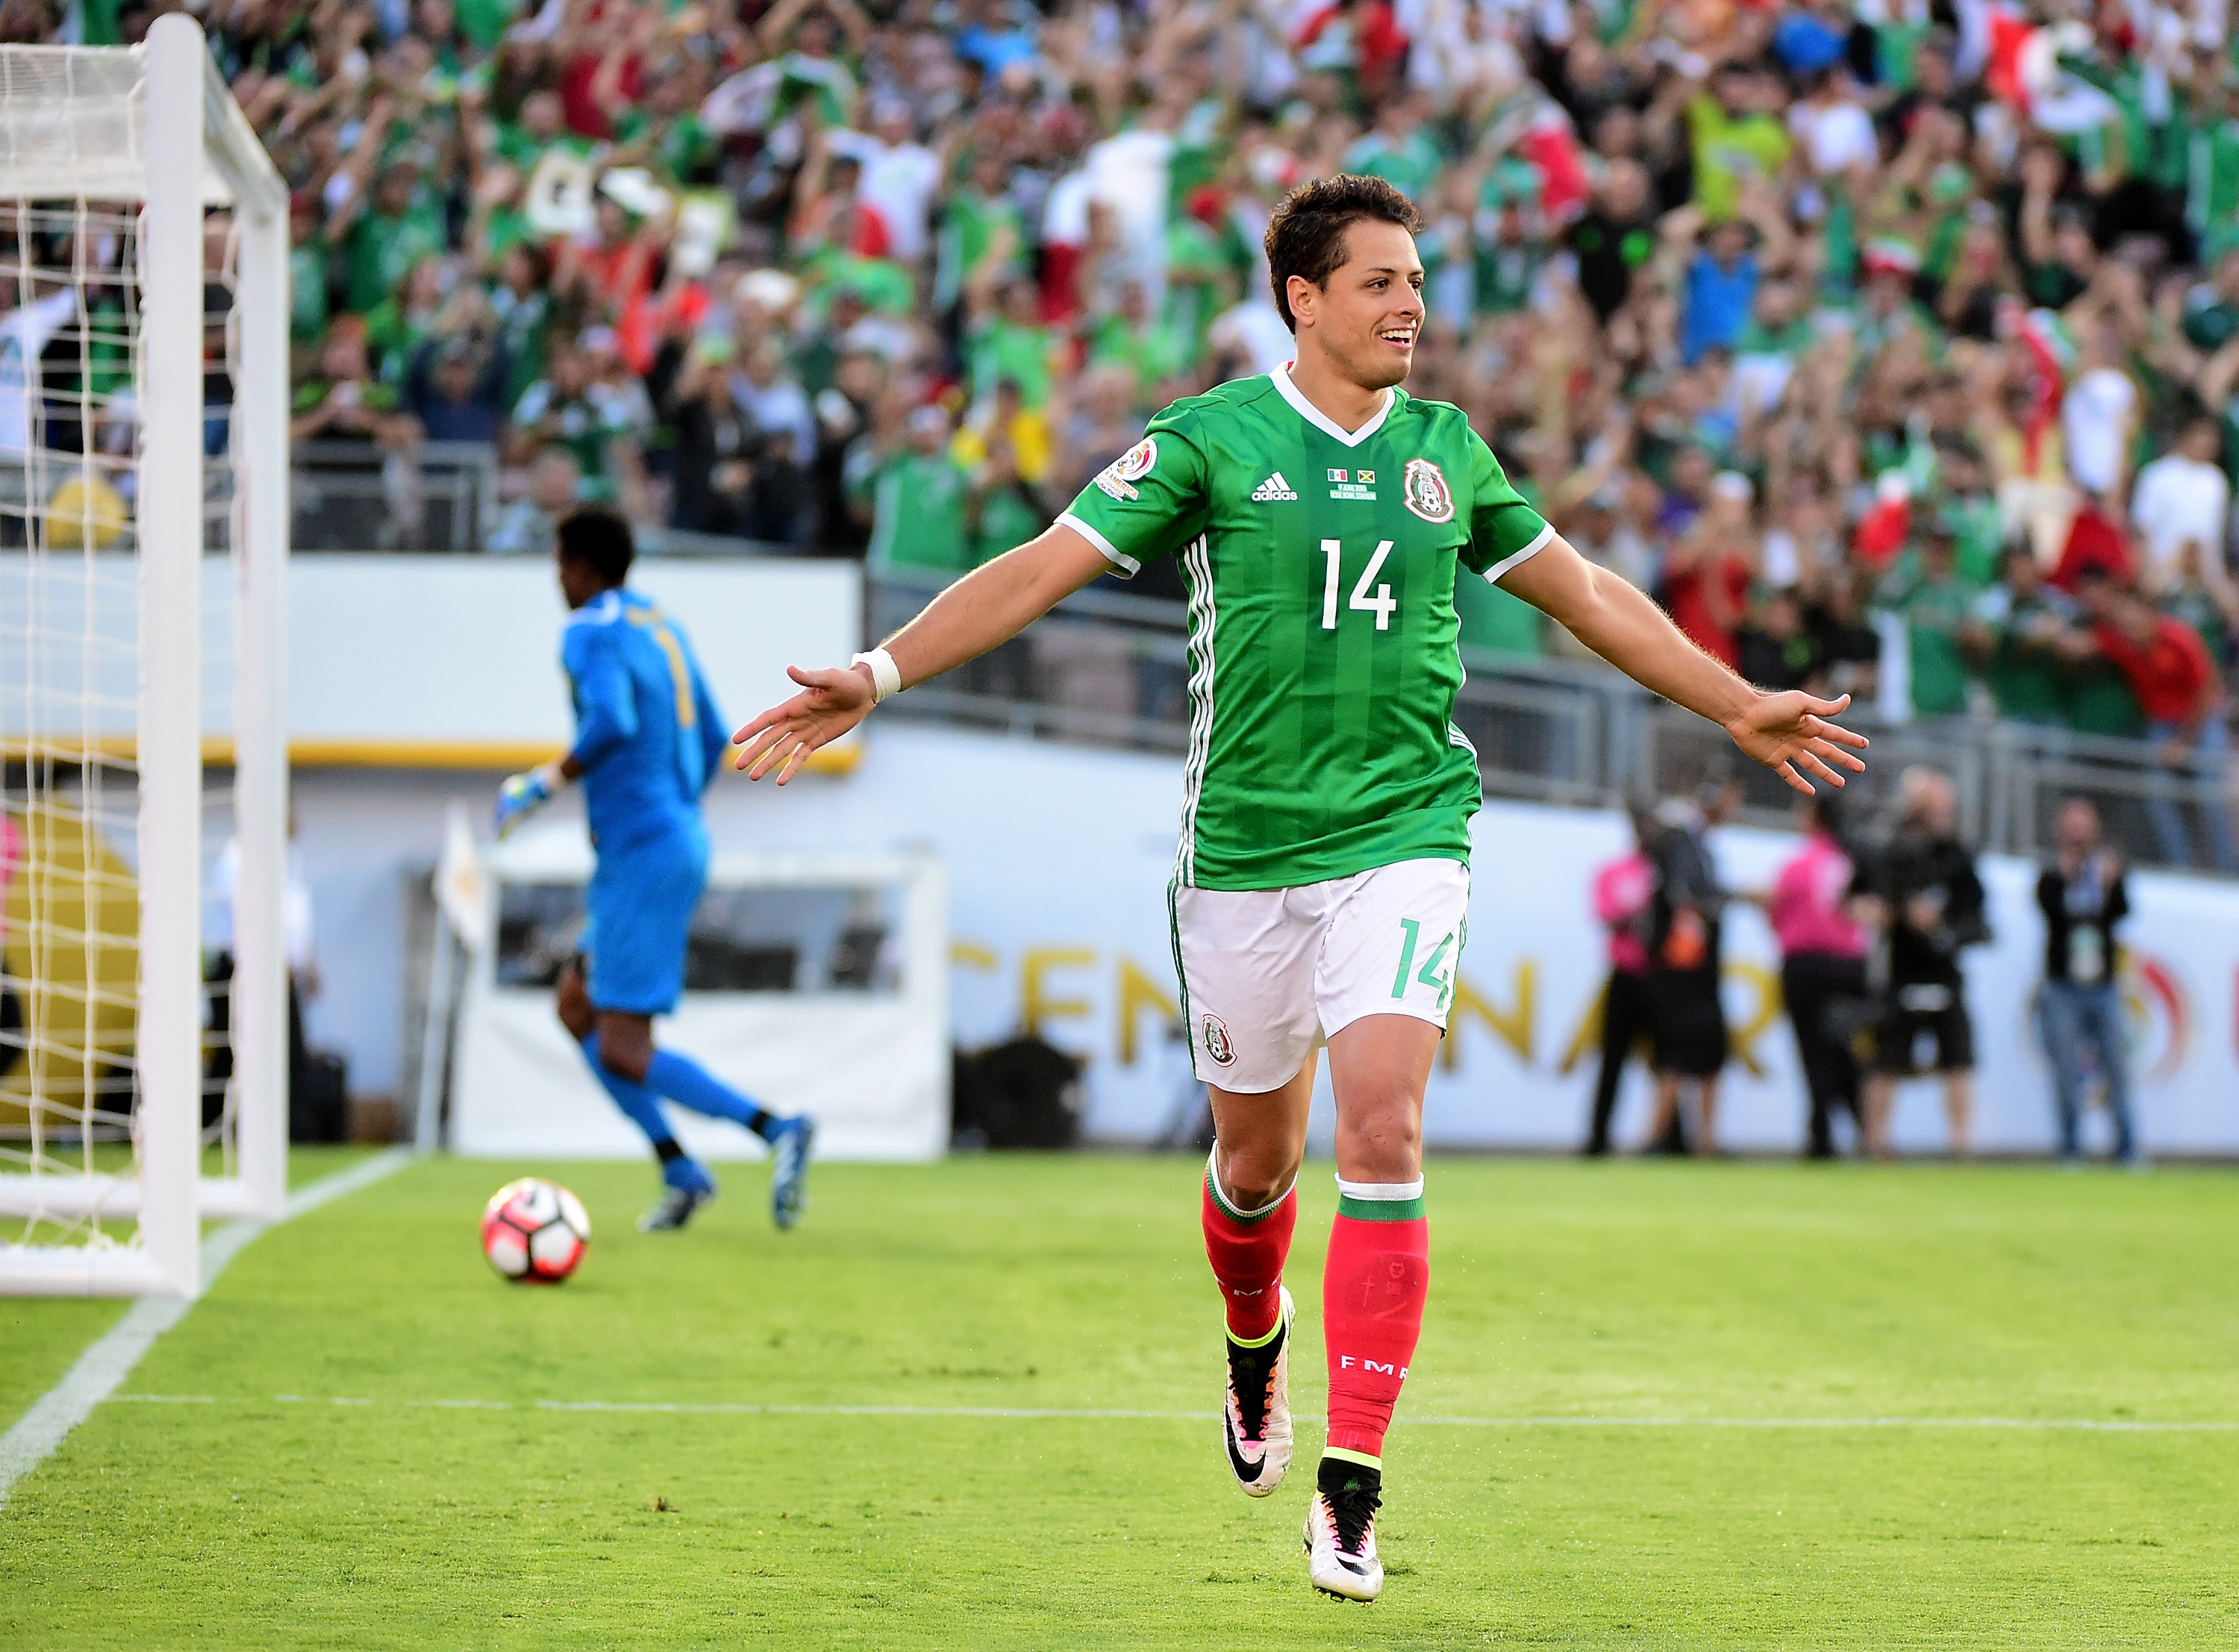 Chicharito (45) is one goal behind Jared Borgetti (46) for the all time Mexico scoring lead.